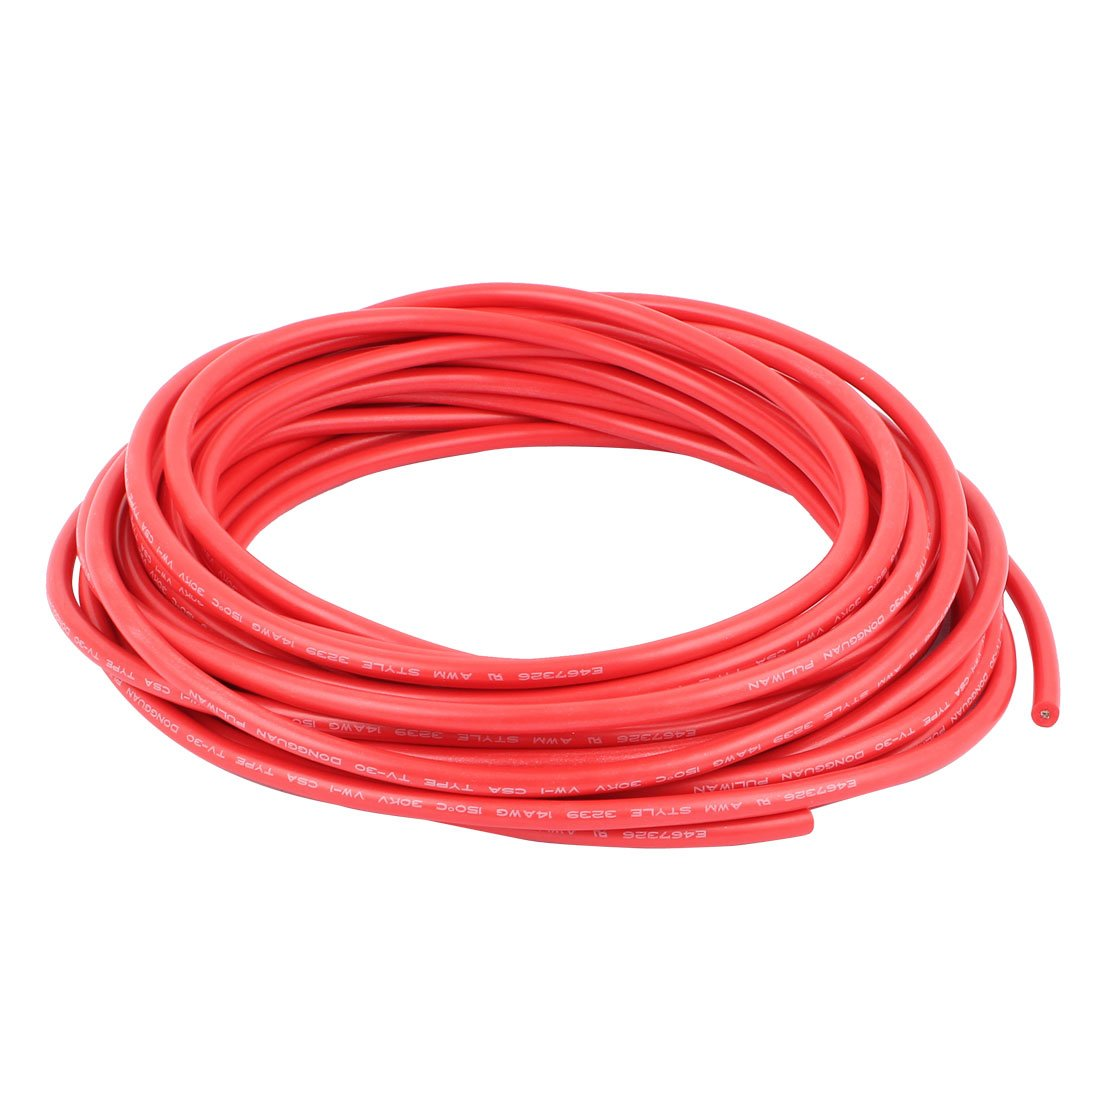 uxcell 10M 32.8Ft 14AWG 30KV Electric Copper Core Flexible ...